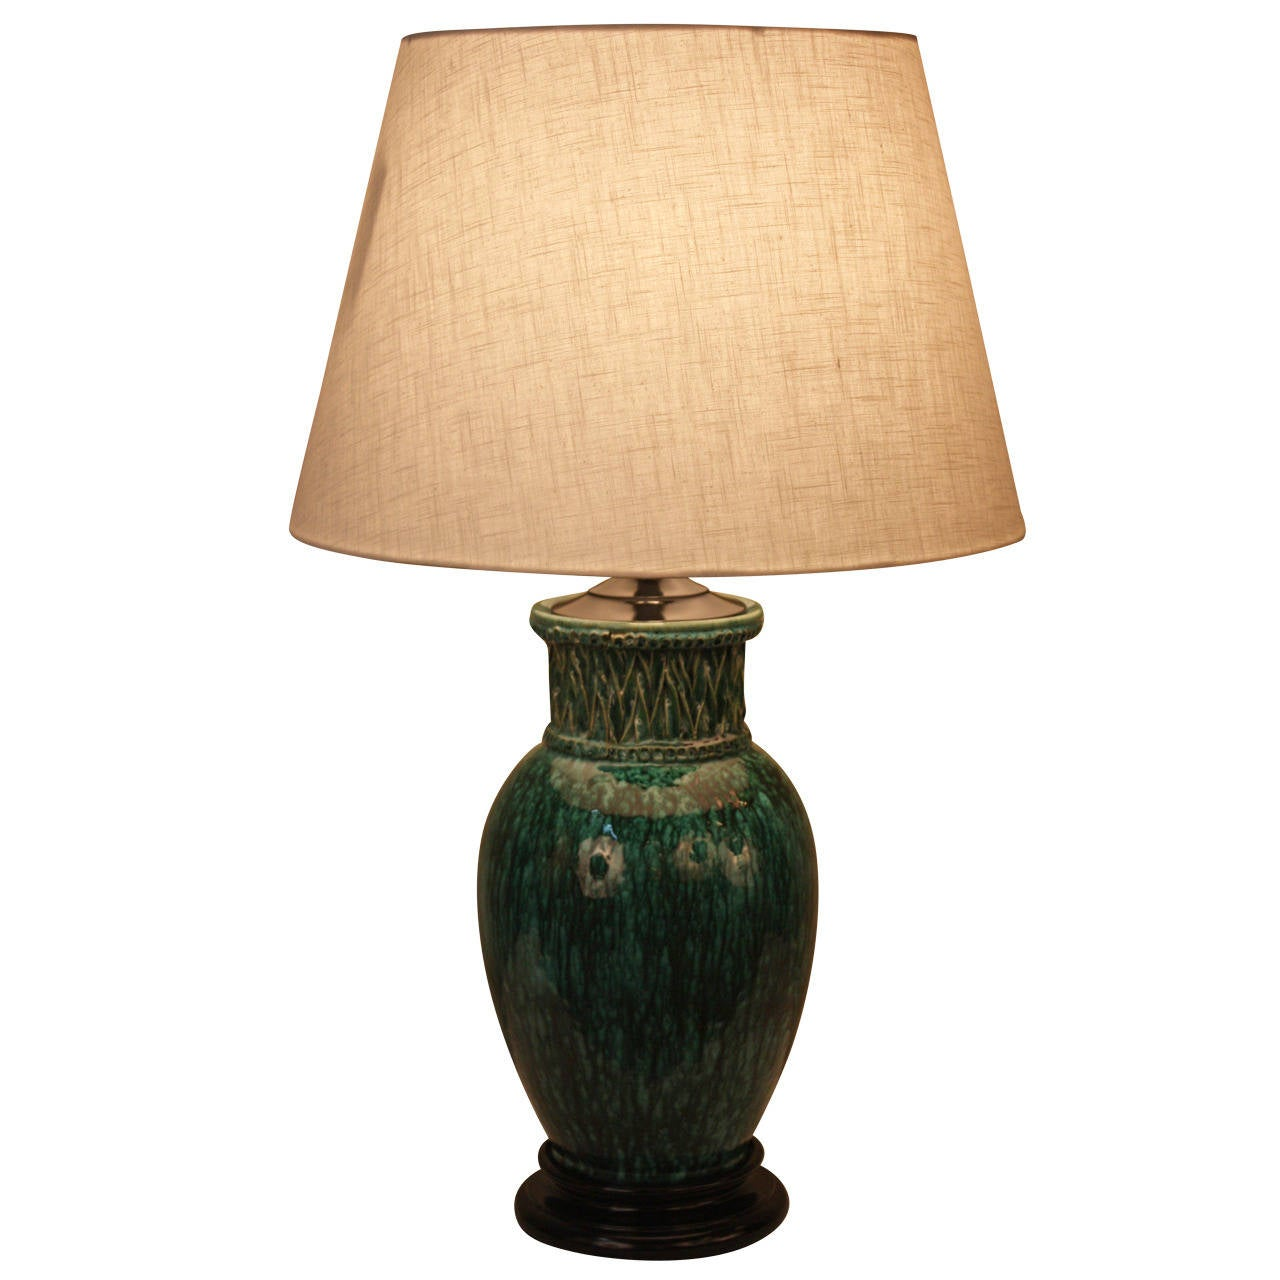 1930s French Pottery Lamp At 1stdibs